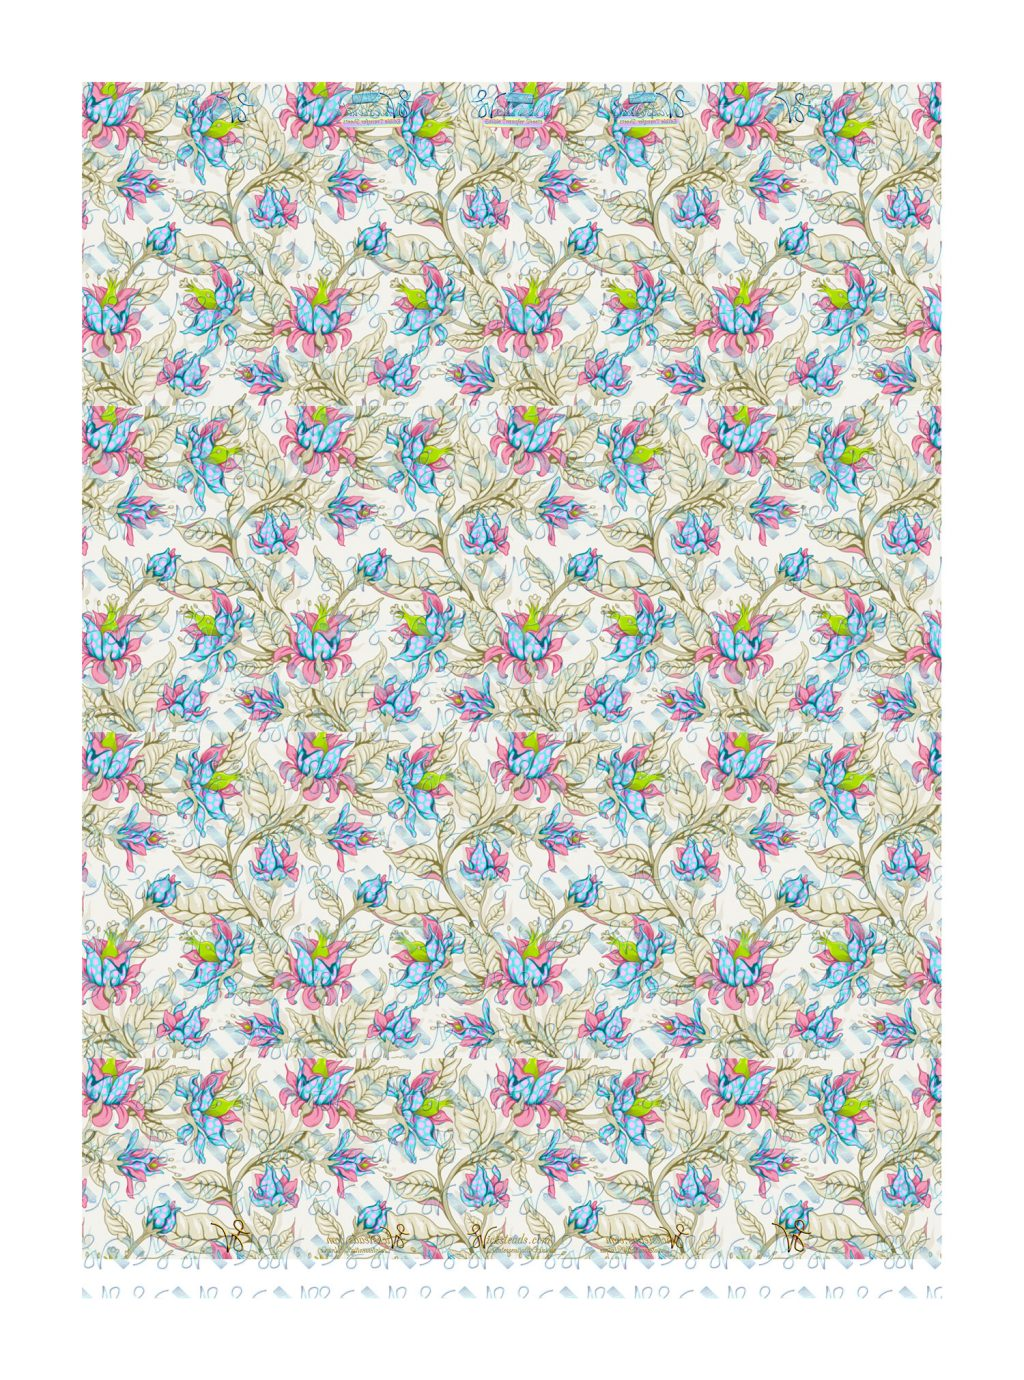 Wickstead's-Eat-Me-Edible-Meringue-Transfer-Sheets–Vintage-Floral-(2)